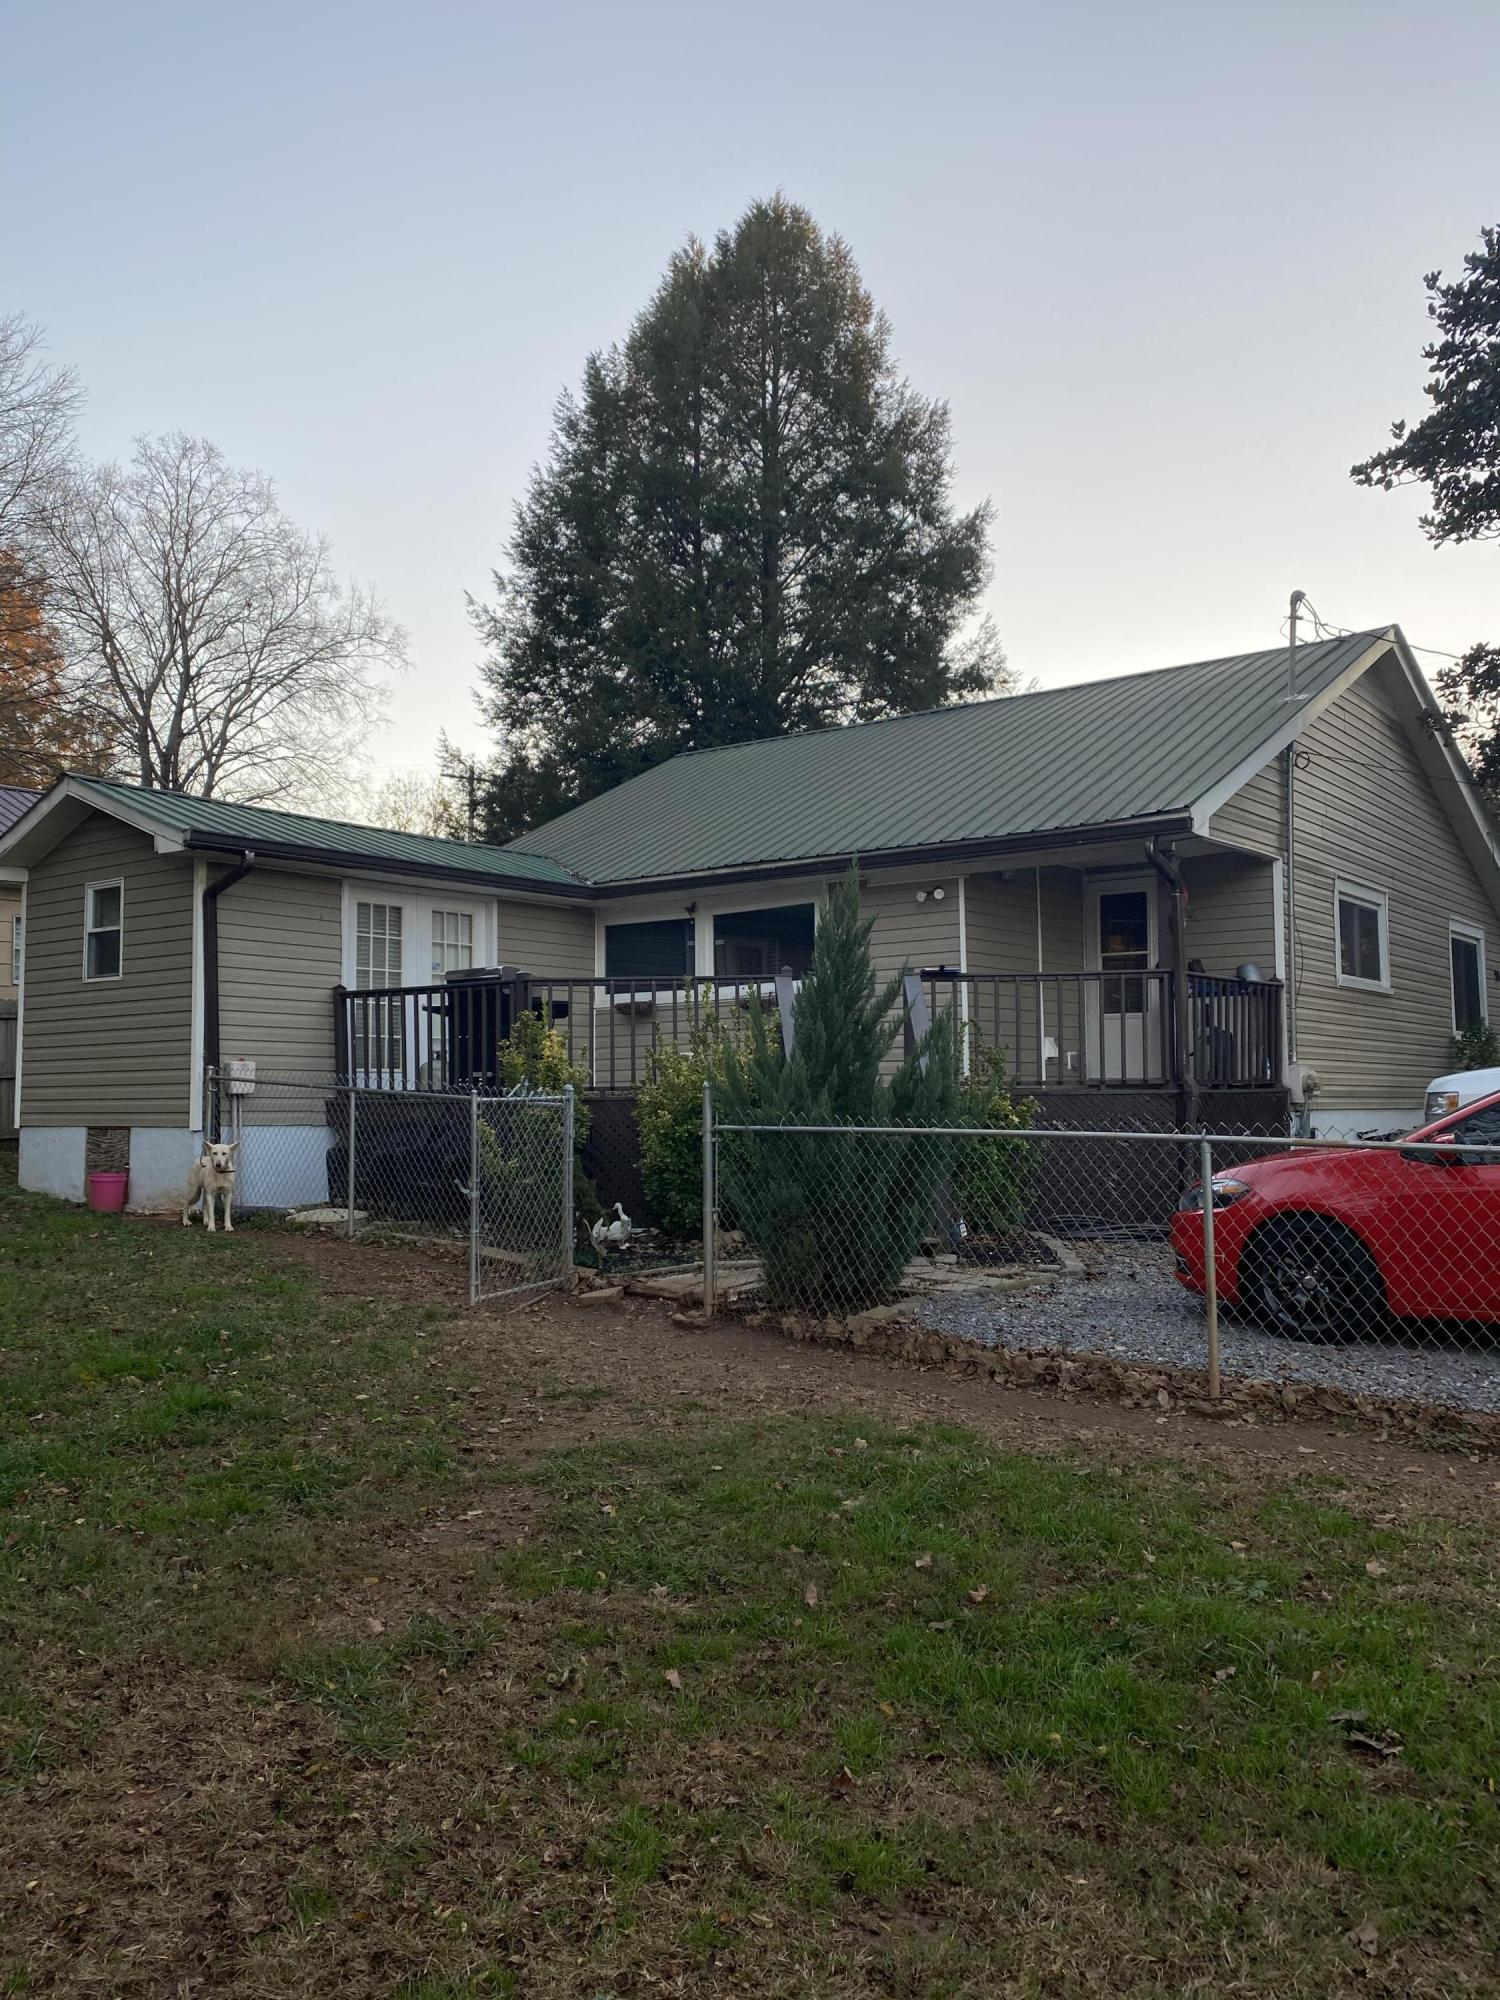 1716 Palos St, Athens, Tennessee 37303, 3 Bedrooms Bedrooms, ,2 BathroomsBathrooms,Single Family,For Sale,1716 Palos St,1136980